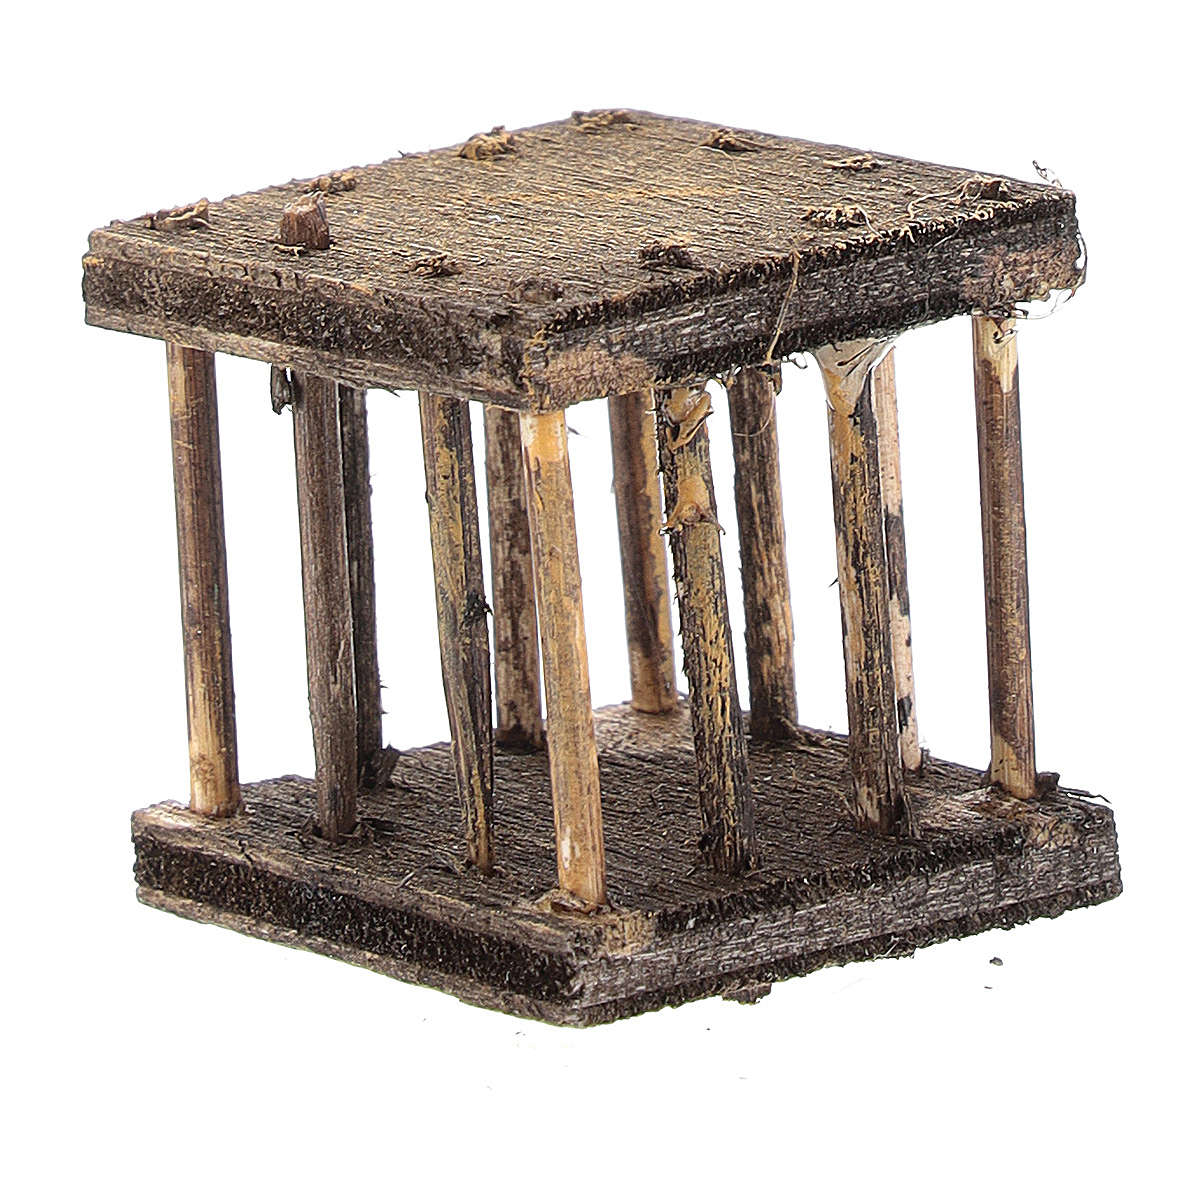 Cage 2,5x3x2,5 cm for Neapolitan nativity 4